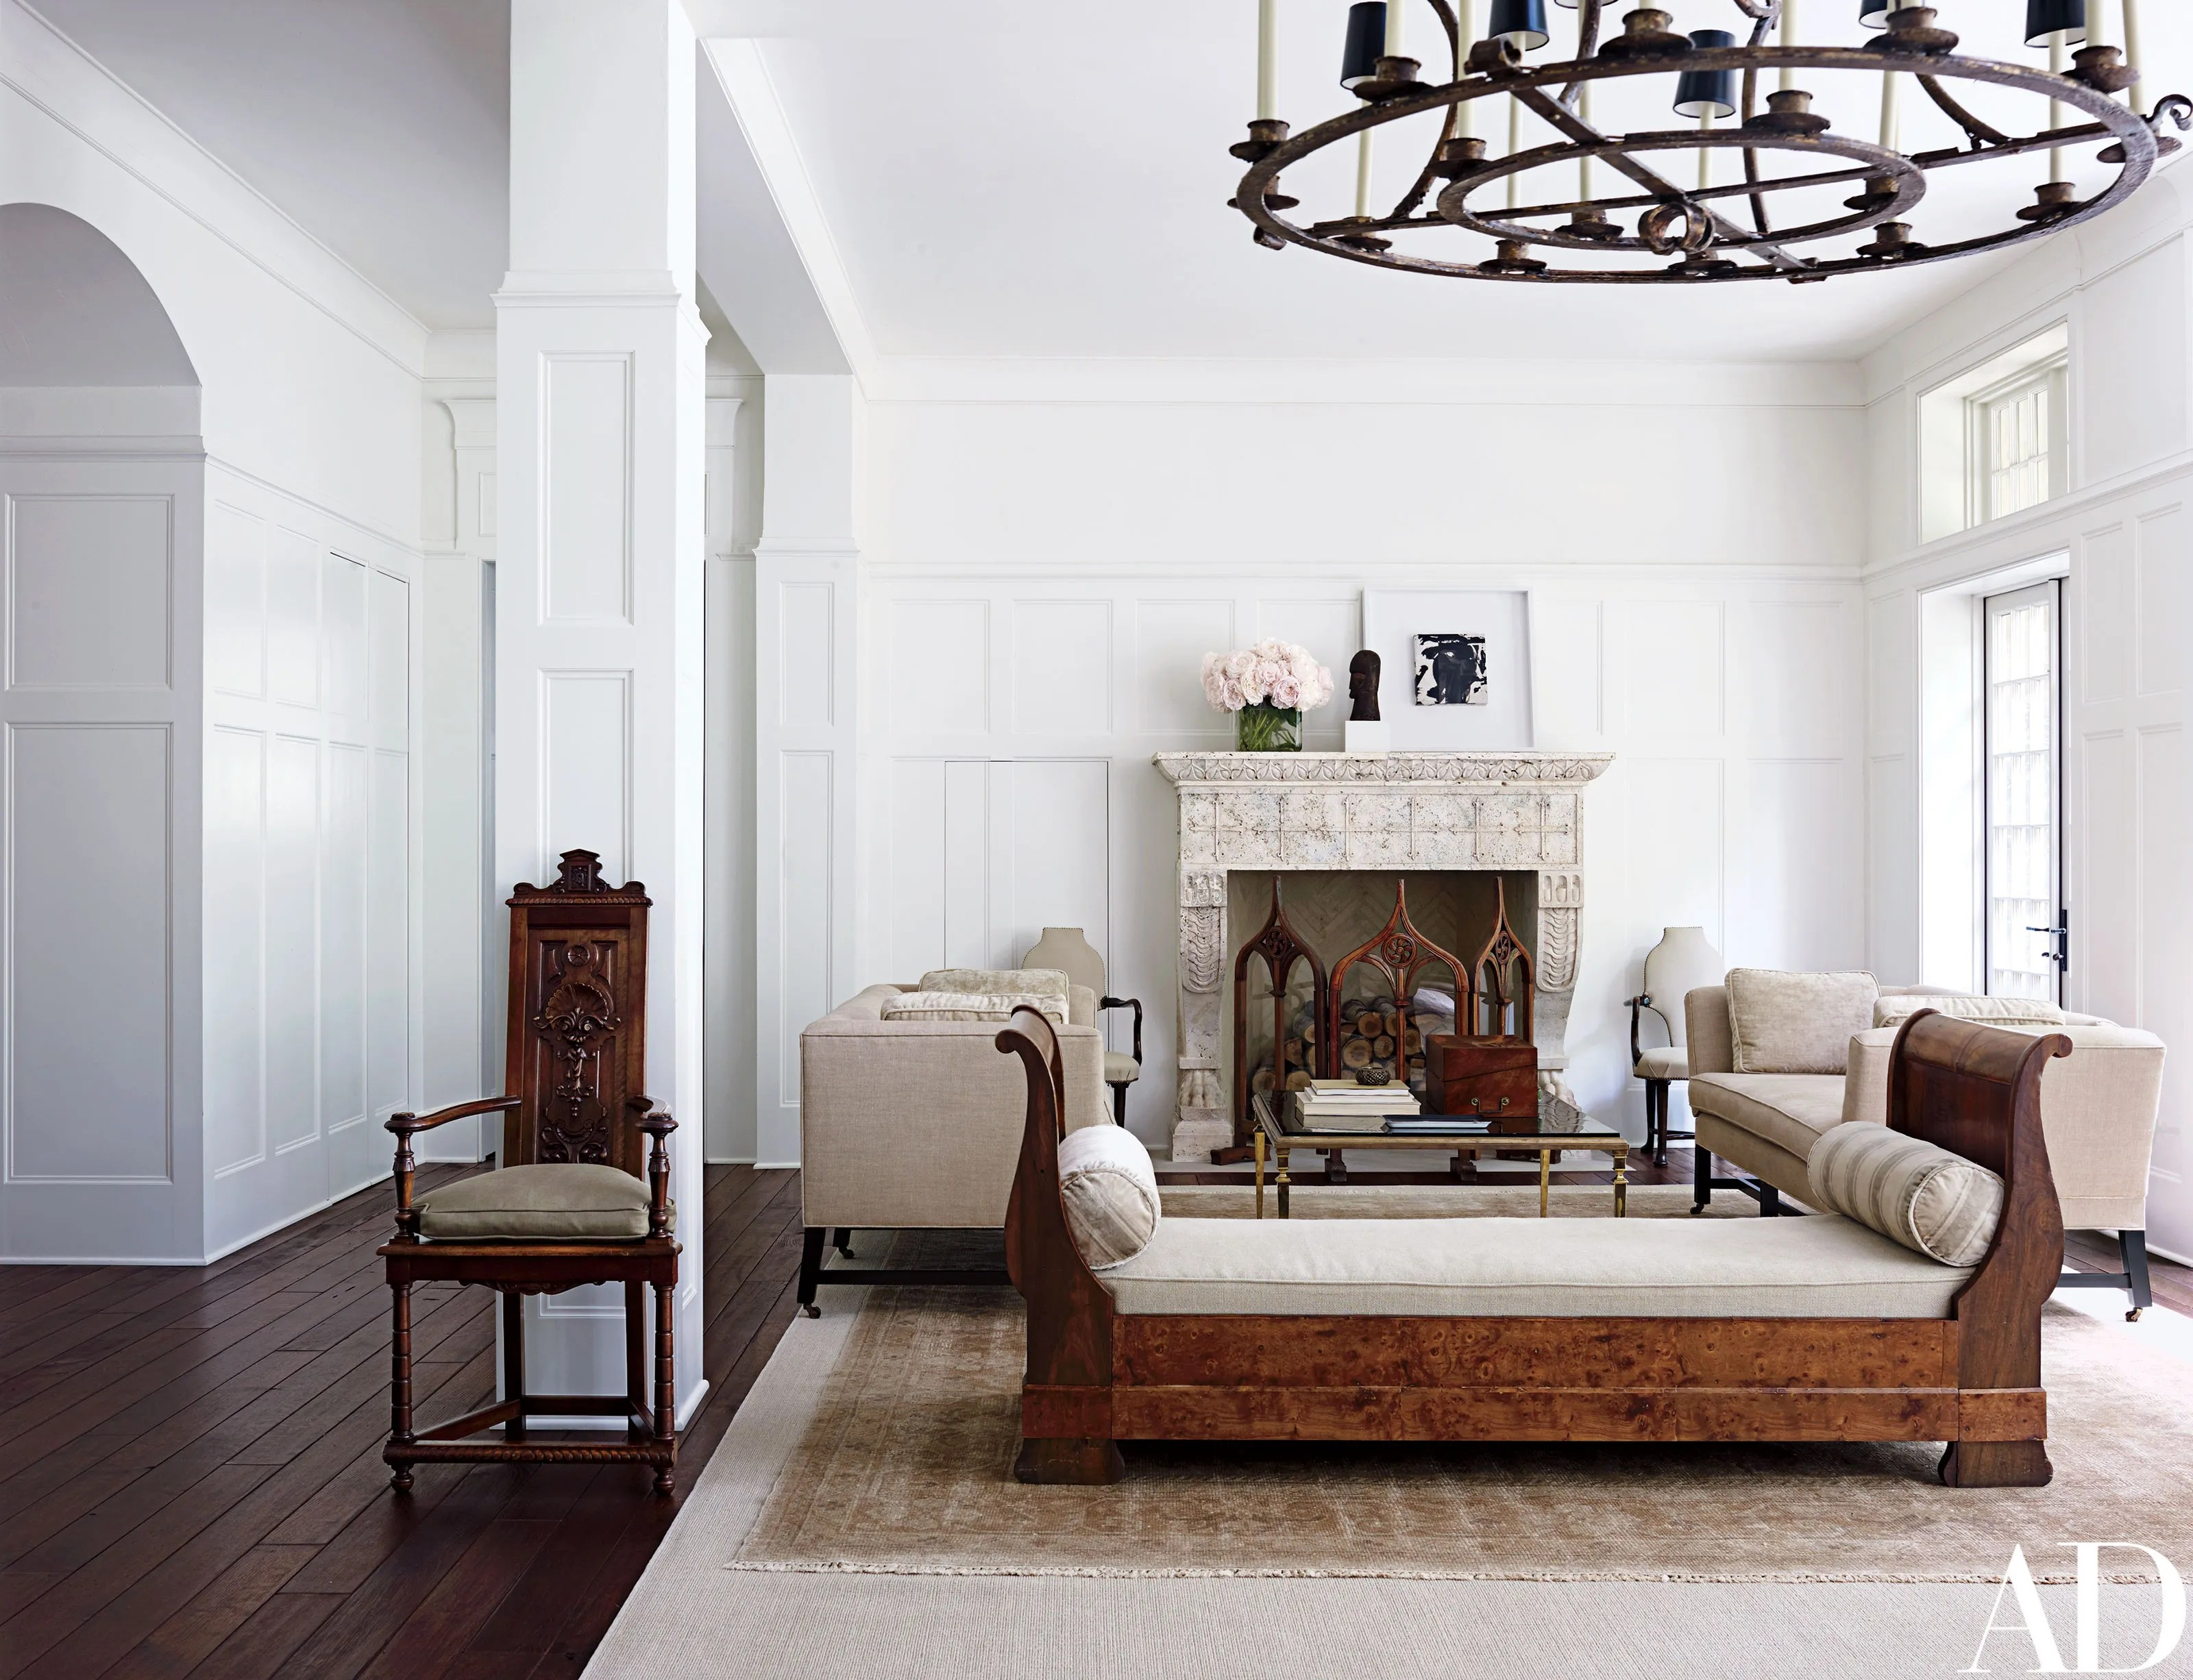 A Tudor Revival Home in Washington, D.C. is Updated to